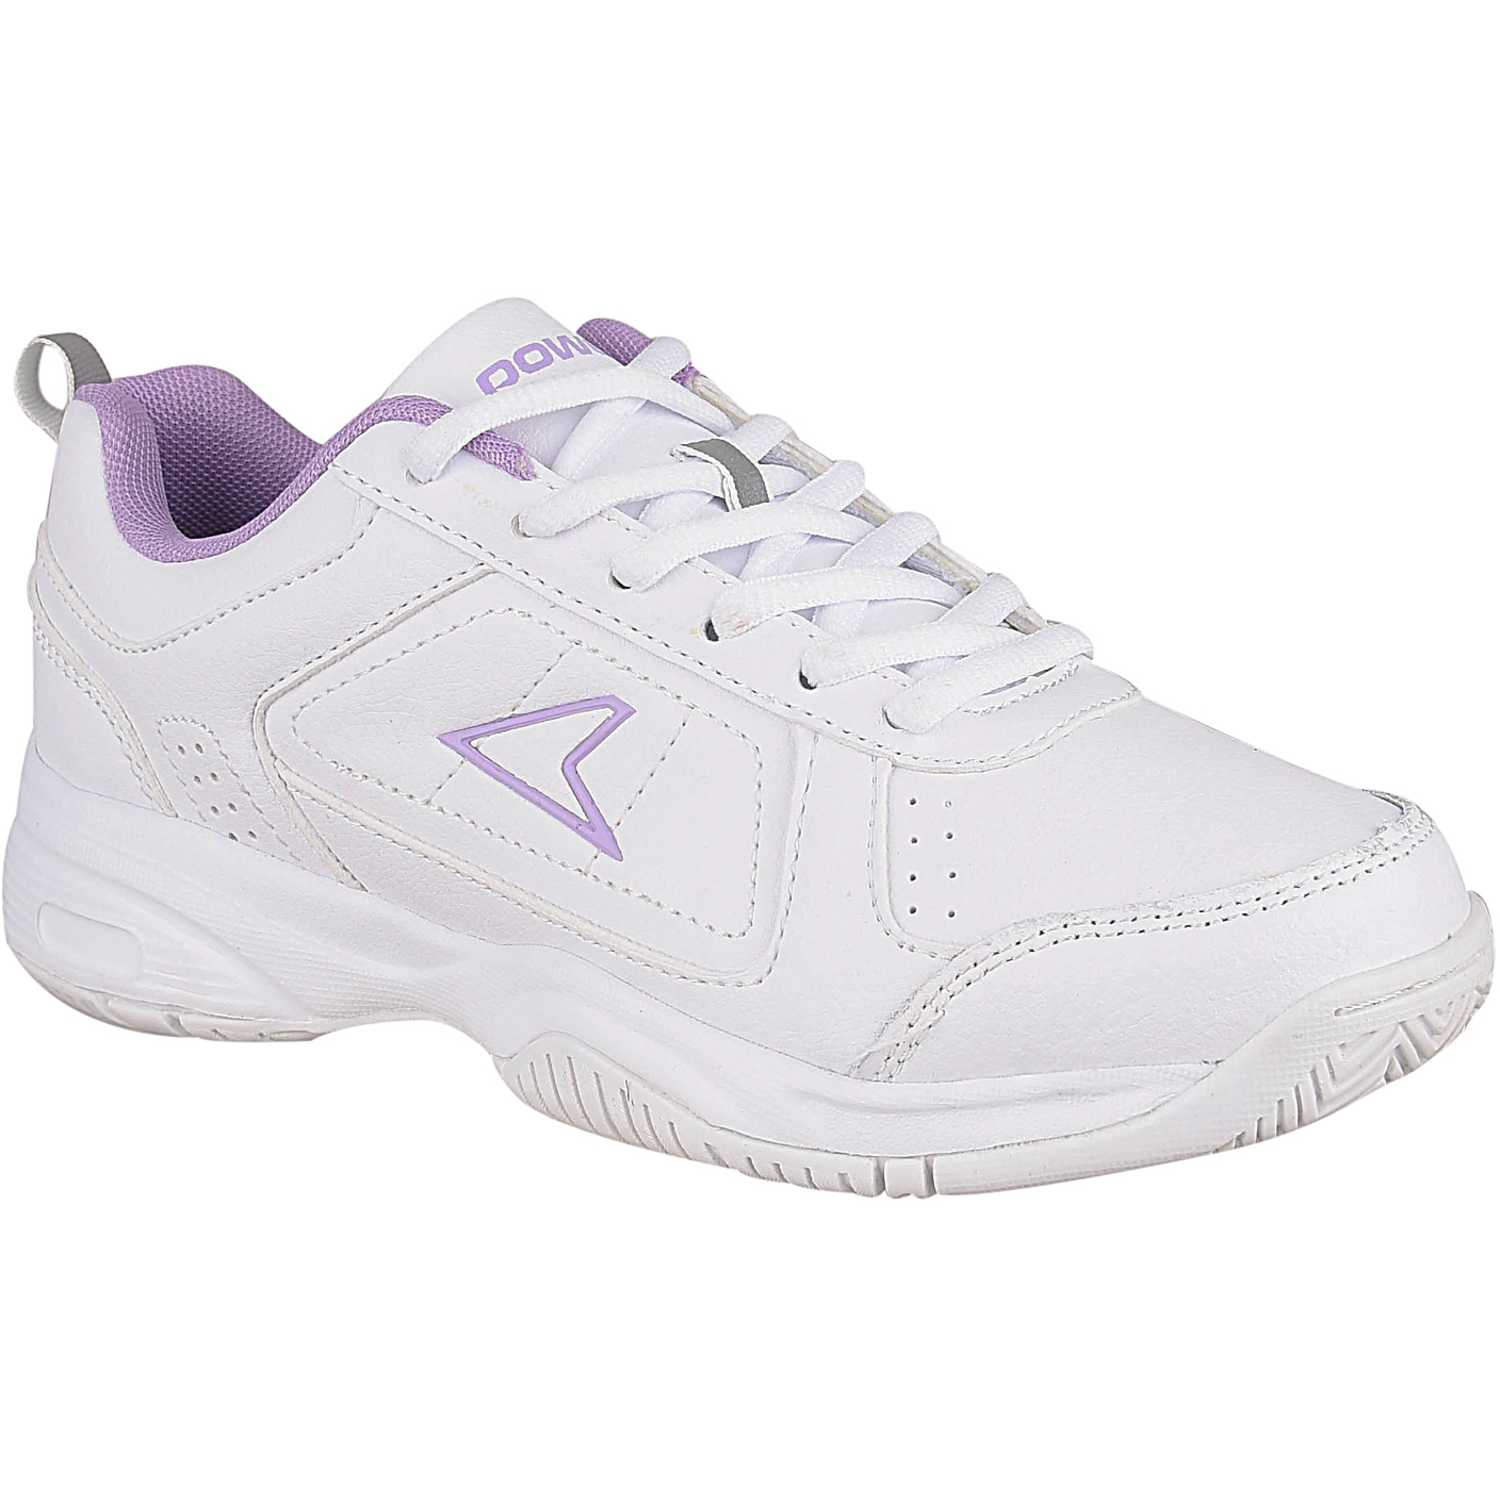 Casual de Mujer Power Blanco / lila chip mission pas 1308